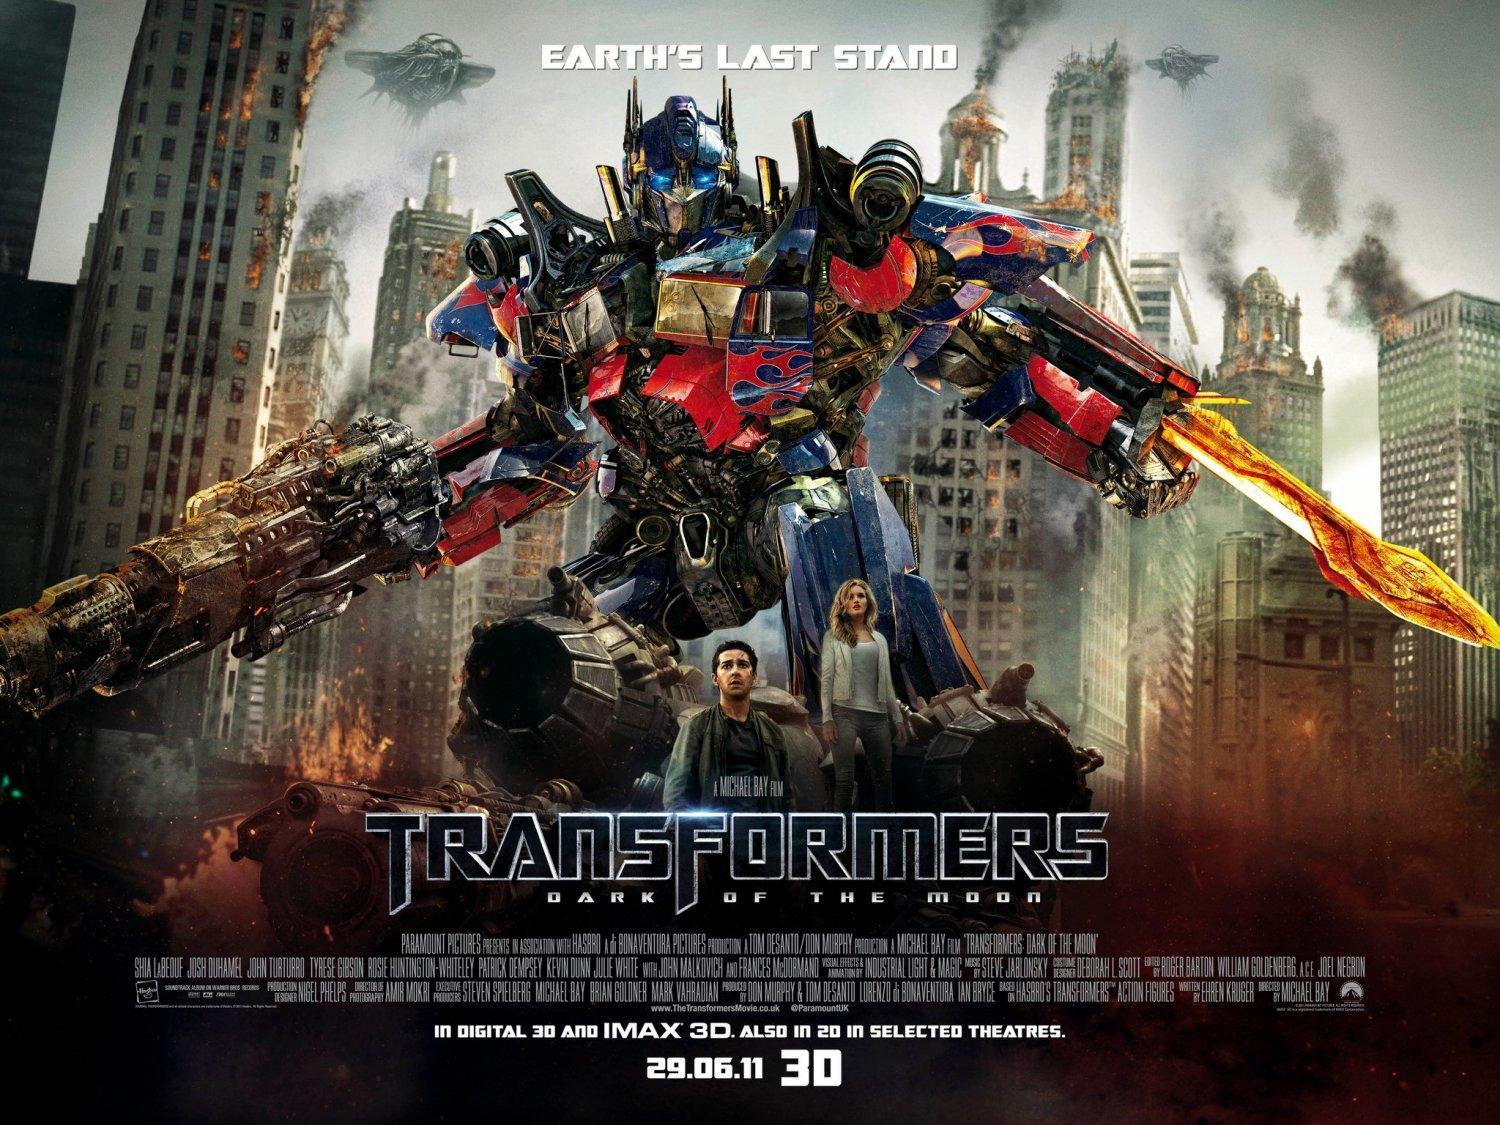 Transformers: Dark of the Moon (Transformers 3) - Wallpapers